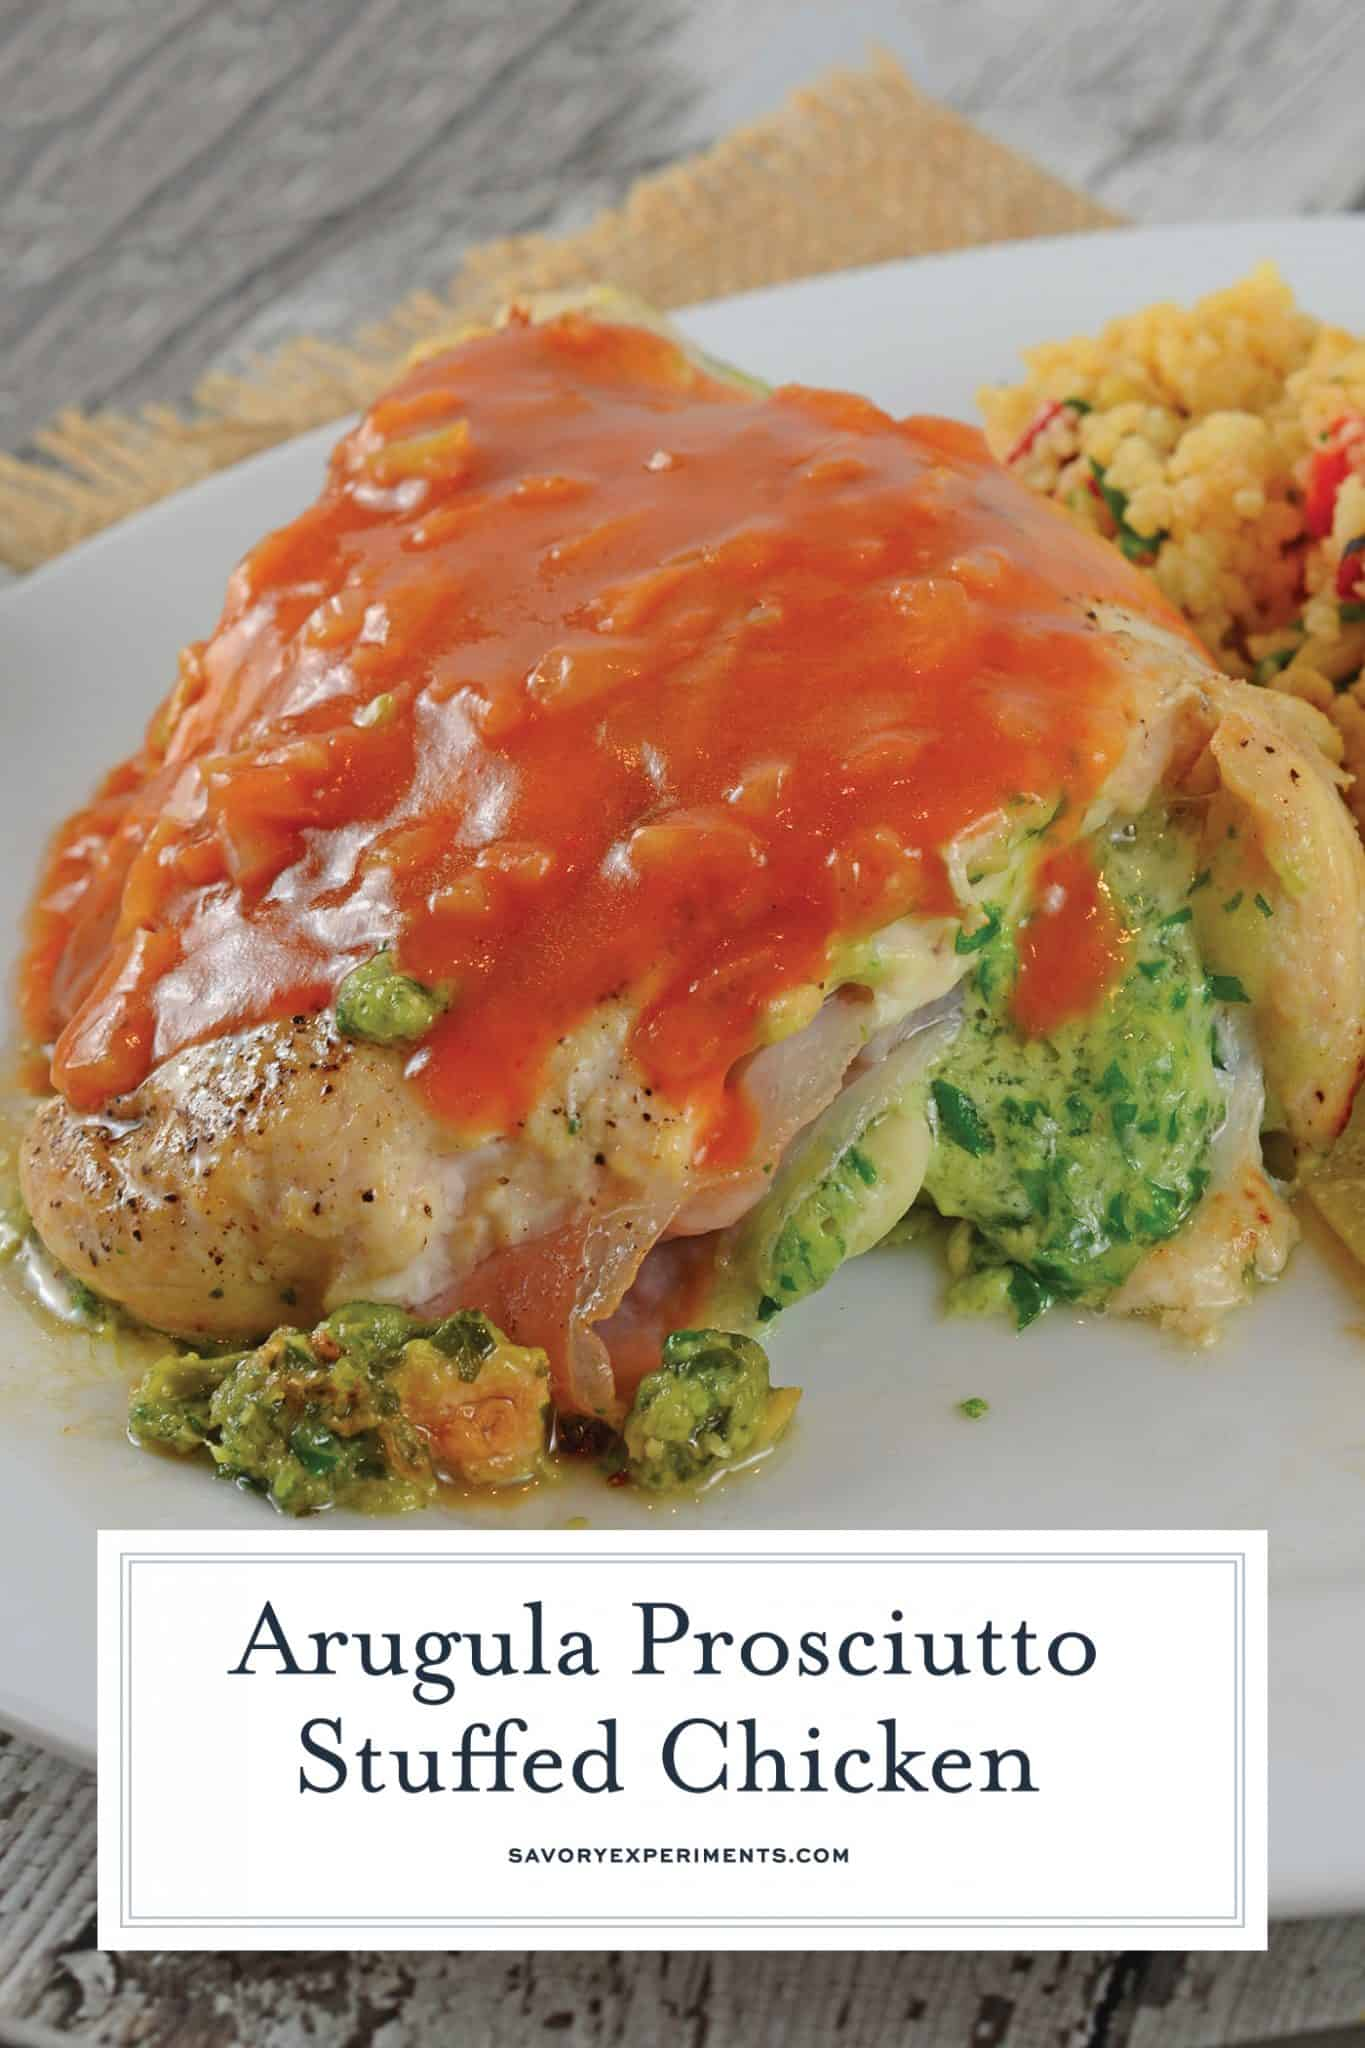 Arugula Prosciutto Stuffed Chicken is topped off with a silky tomato shallot sauce. Baked chicken recipes are great, but cheese stuffed chicken breasts are even better! #cheesestuffedchickenbreast #bakedchickenrecipe #stuffedchickenbreastrecipe www.savoryexperiments.com